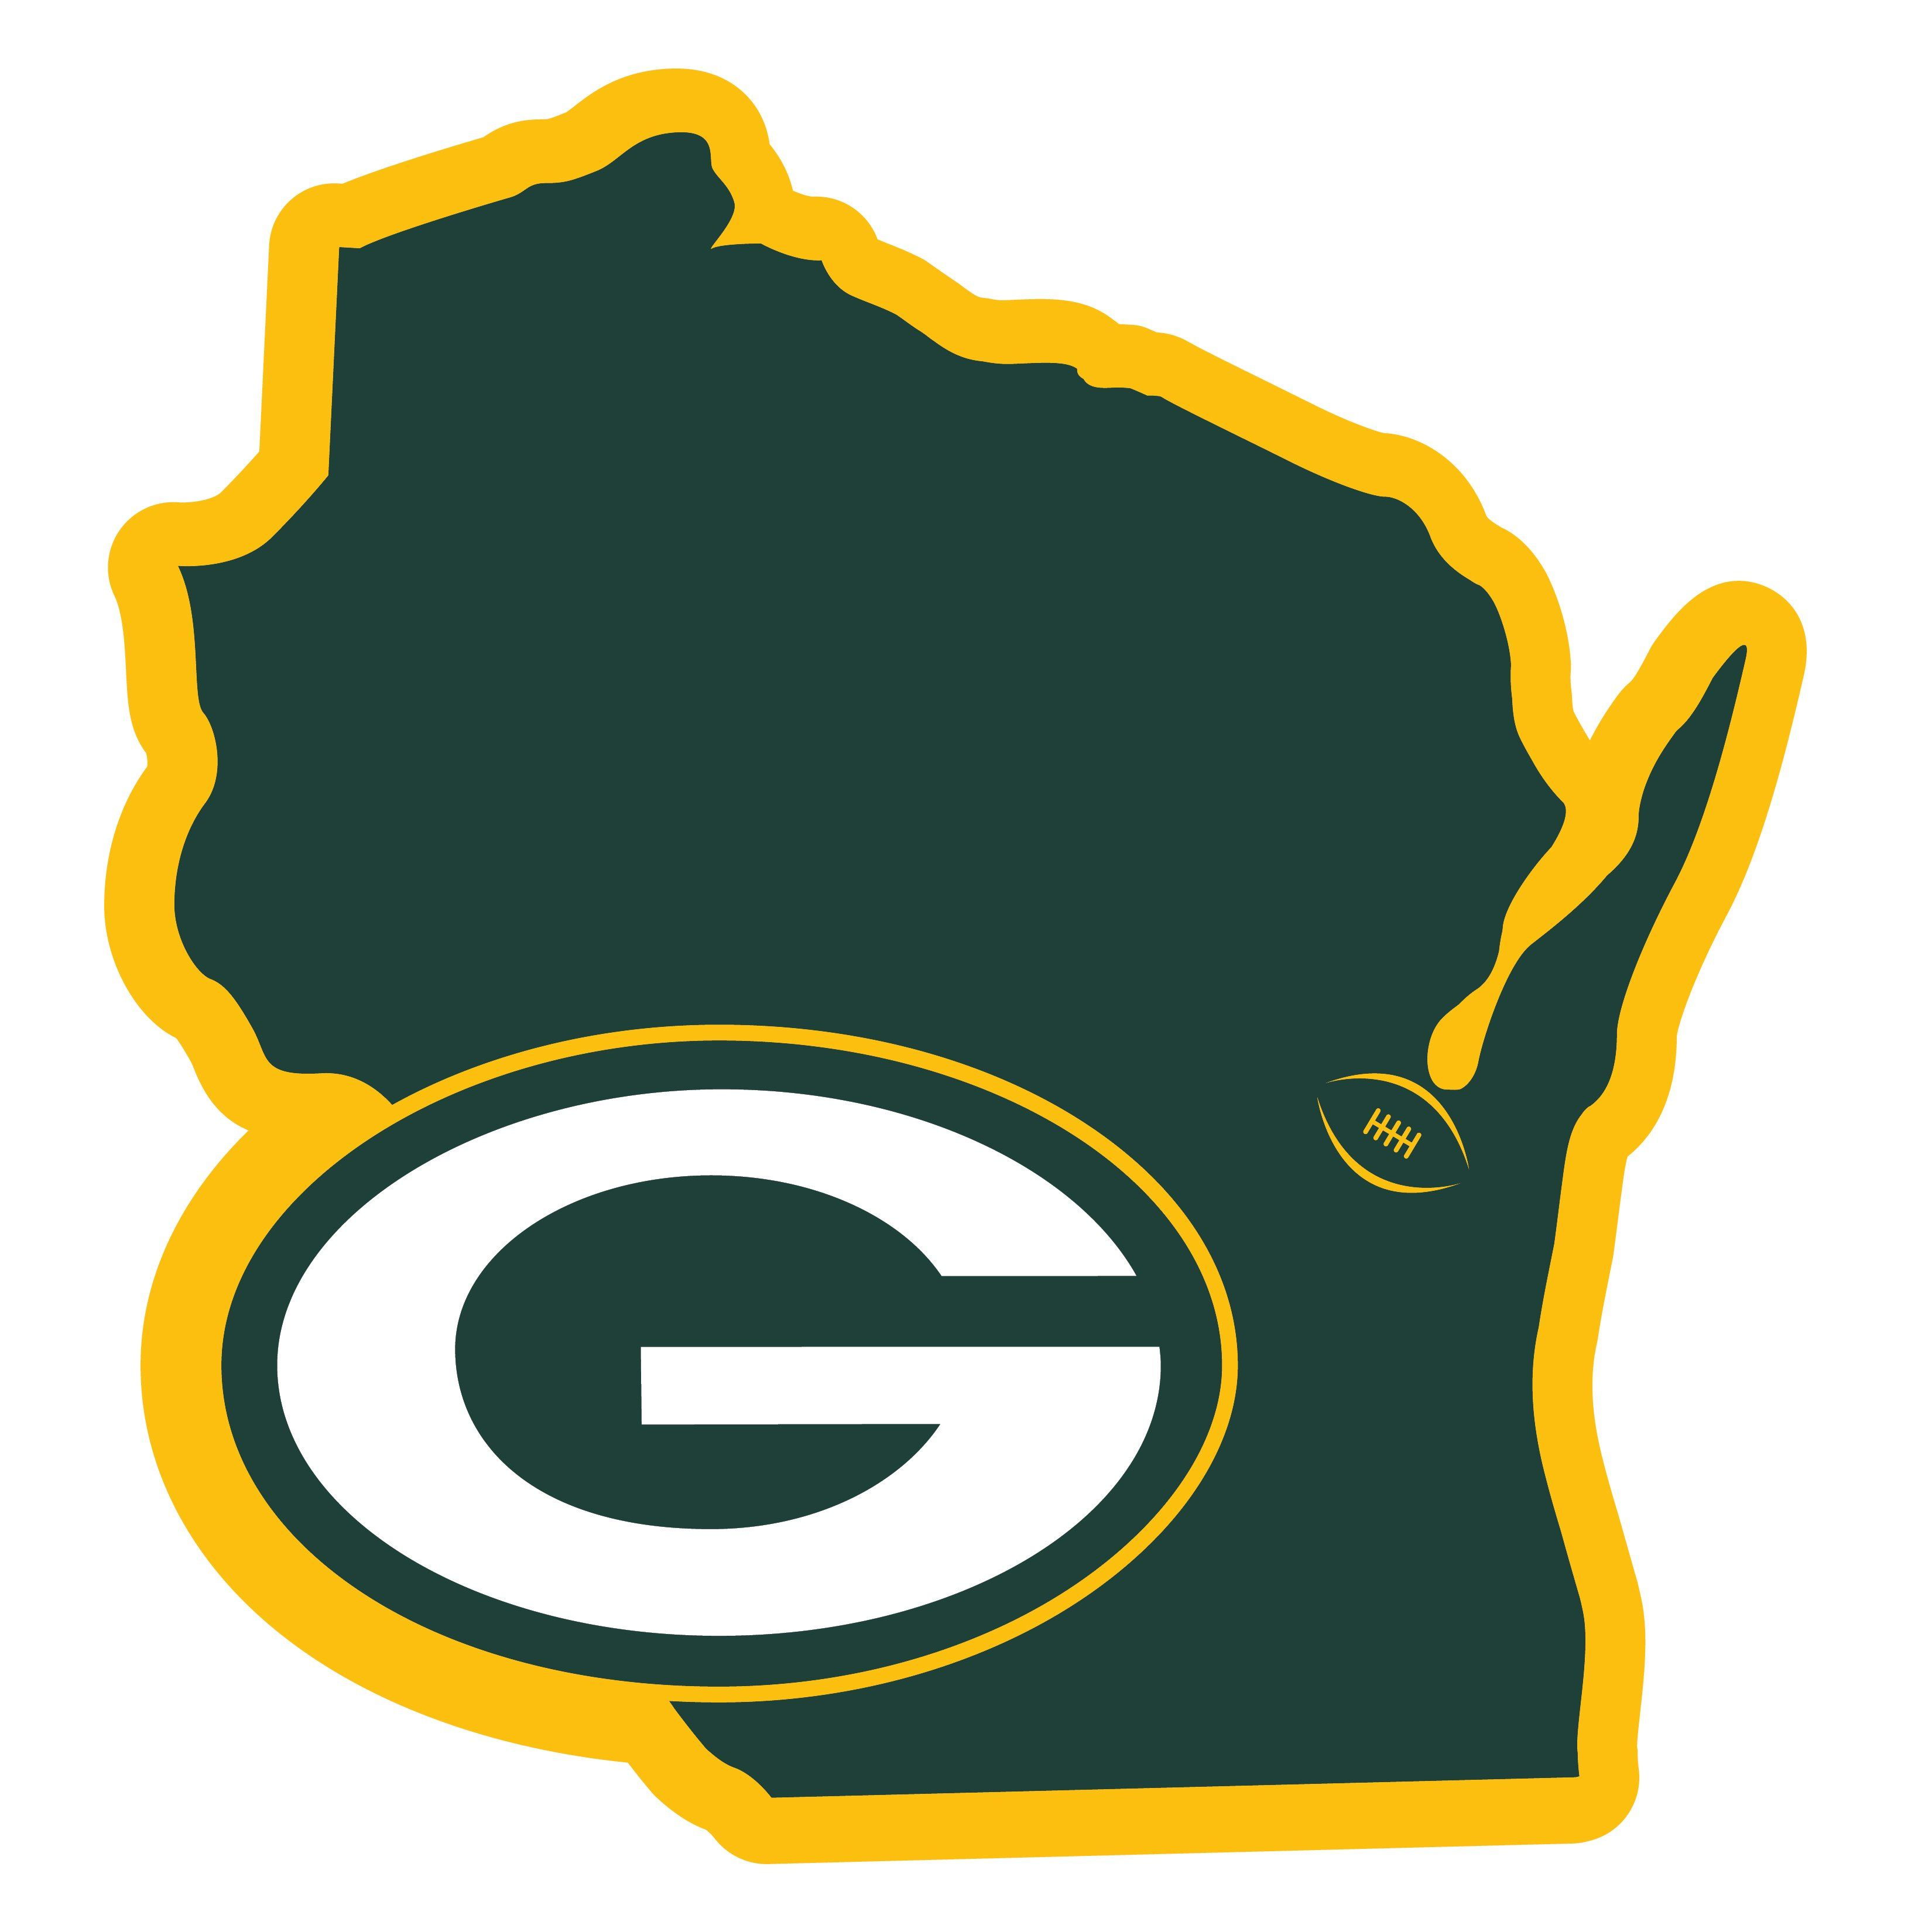 Green Bay Packers Home State 11 Inch Magnet In 2020 Green Bay Packers Logo Green Bay Packers Nfl Green Bay